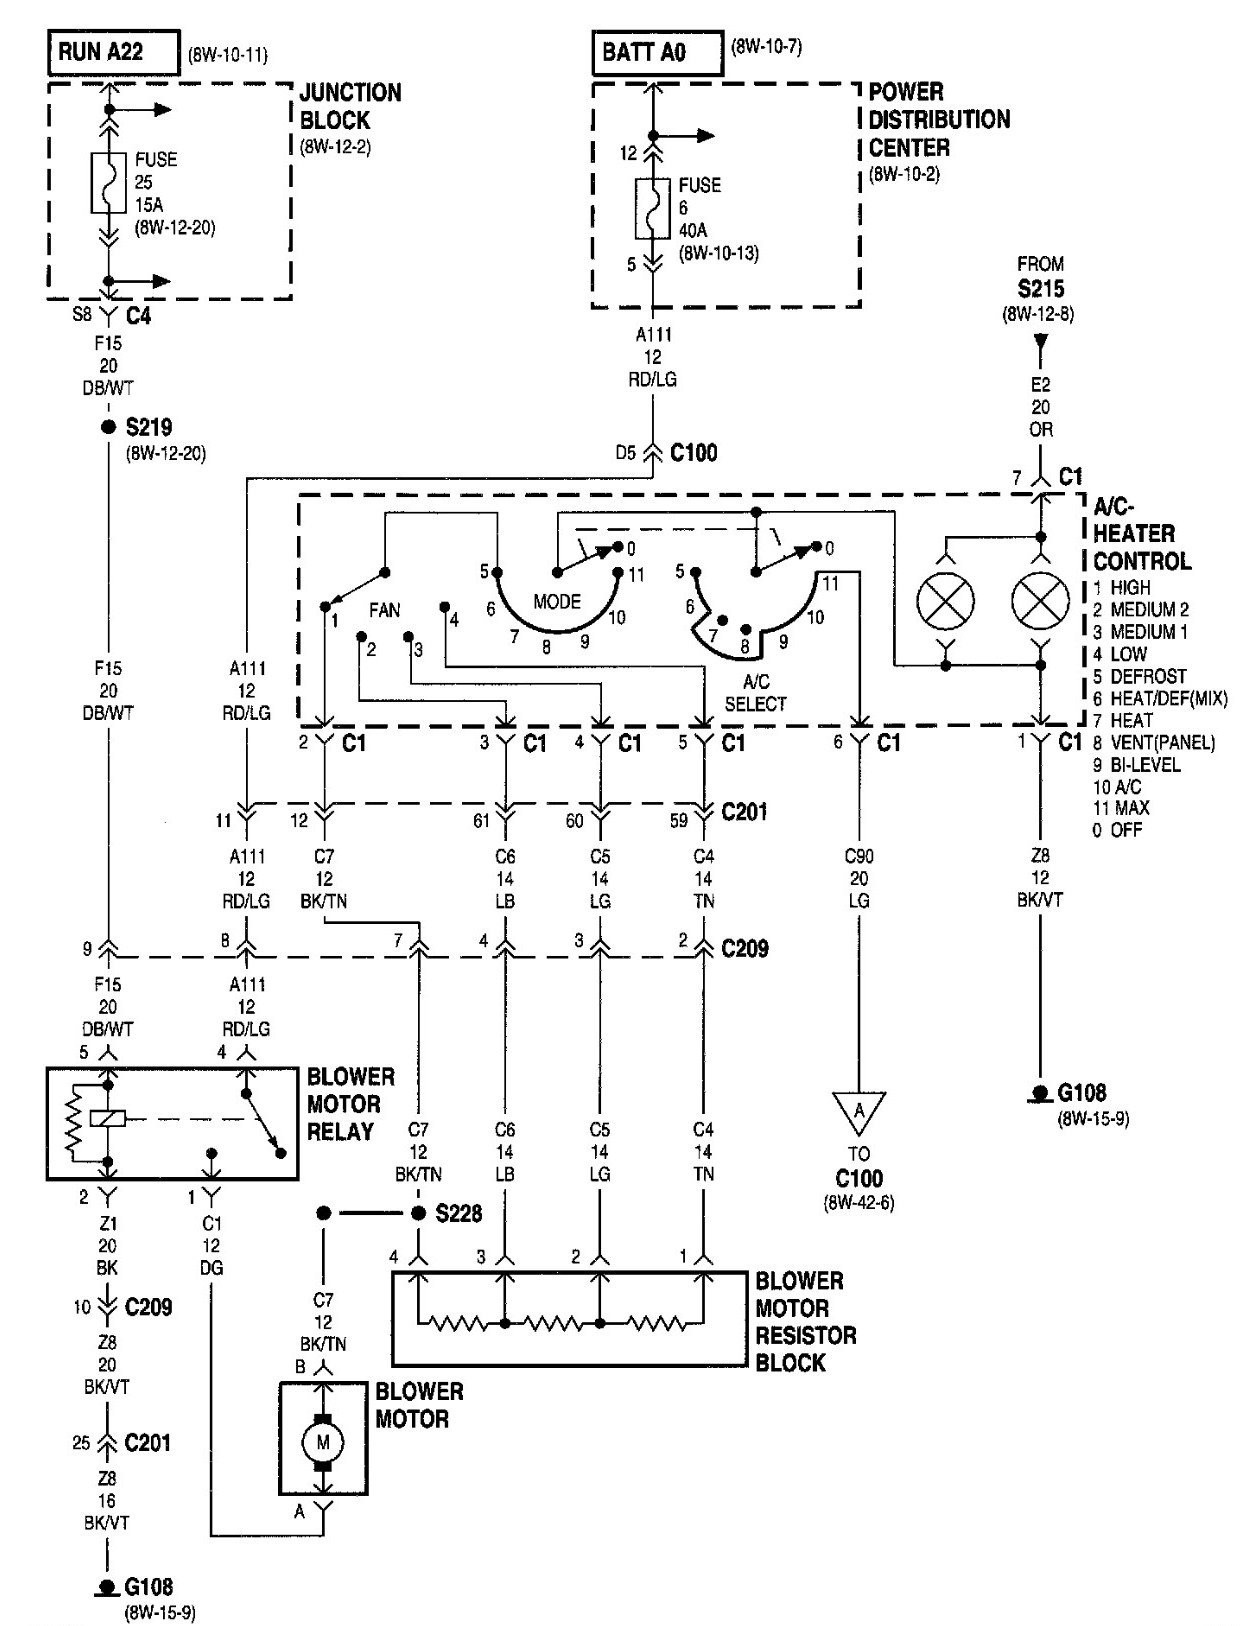 Amc 304 Wiring Diagram Manual Of Jeep 360 Engine 2000 Grand Cherokee Laredo Electrical Rh Wiringforall Today